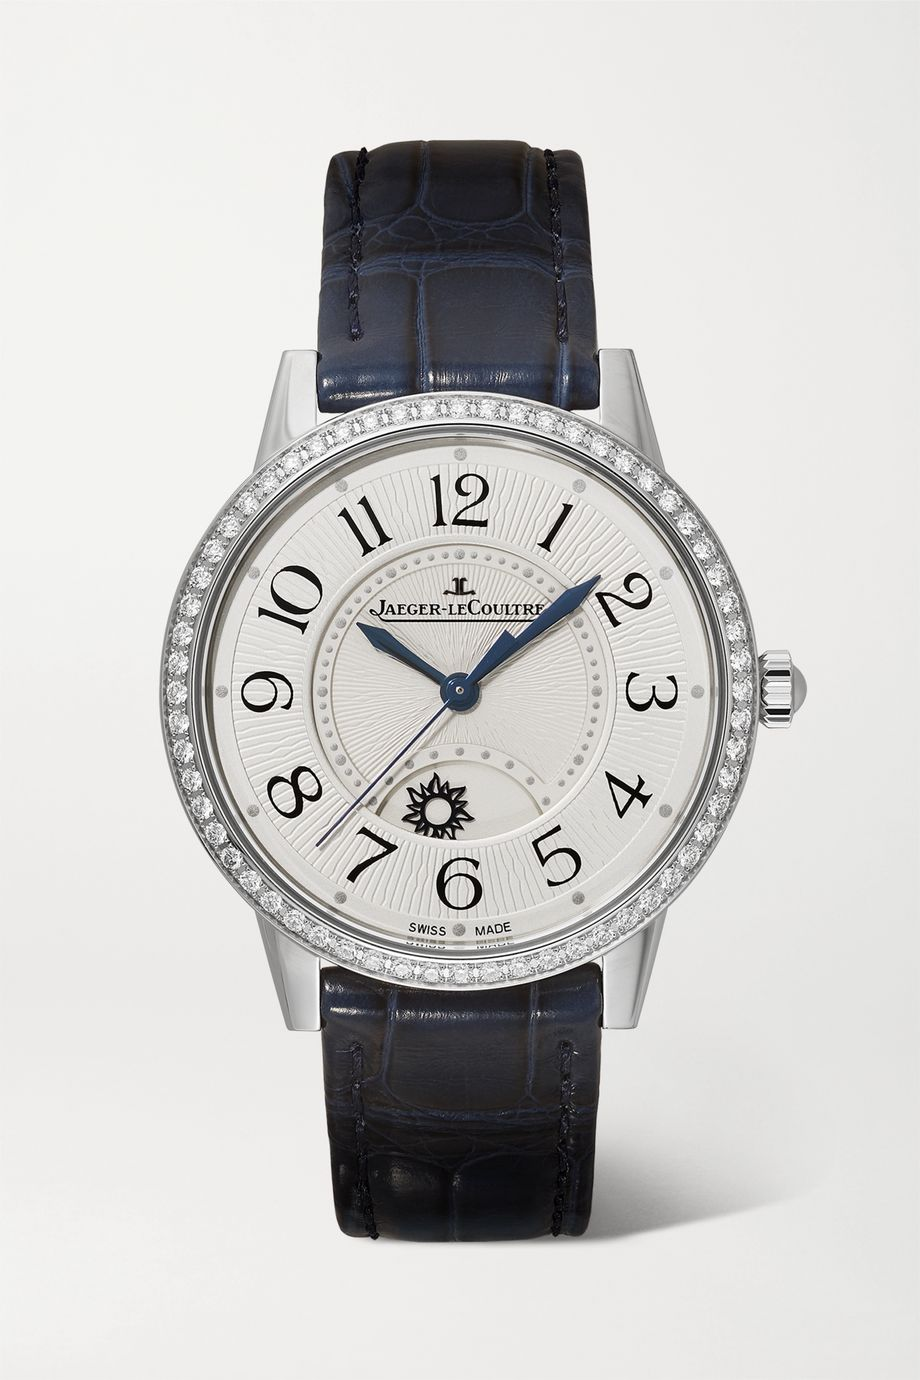 Jaeger-LeCoultre Rendez-Vous Night & Day 34mm medium stainless steel, alligator and diamond watch